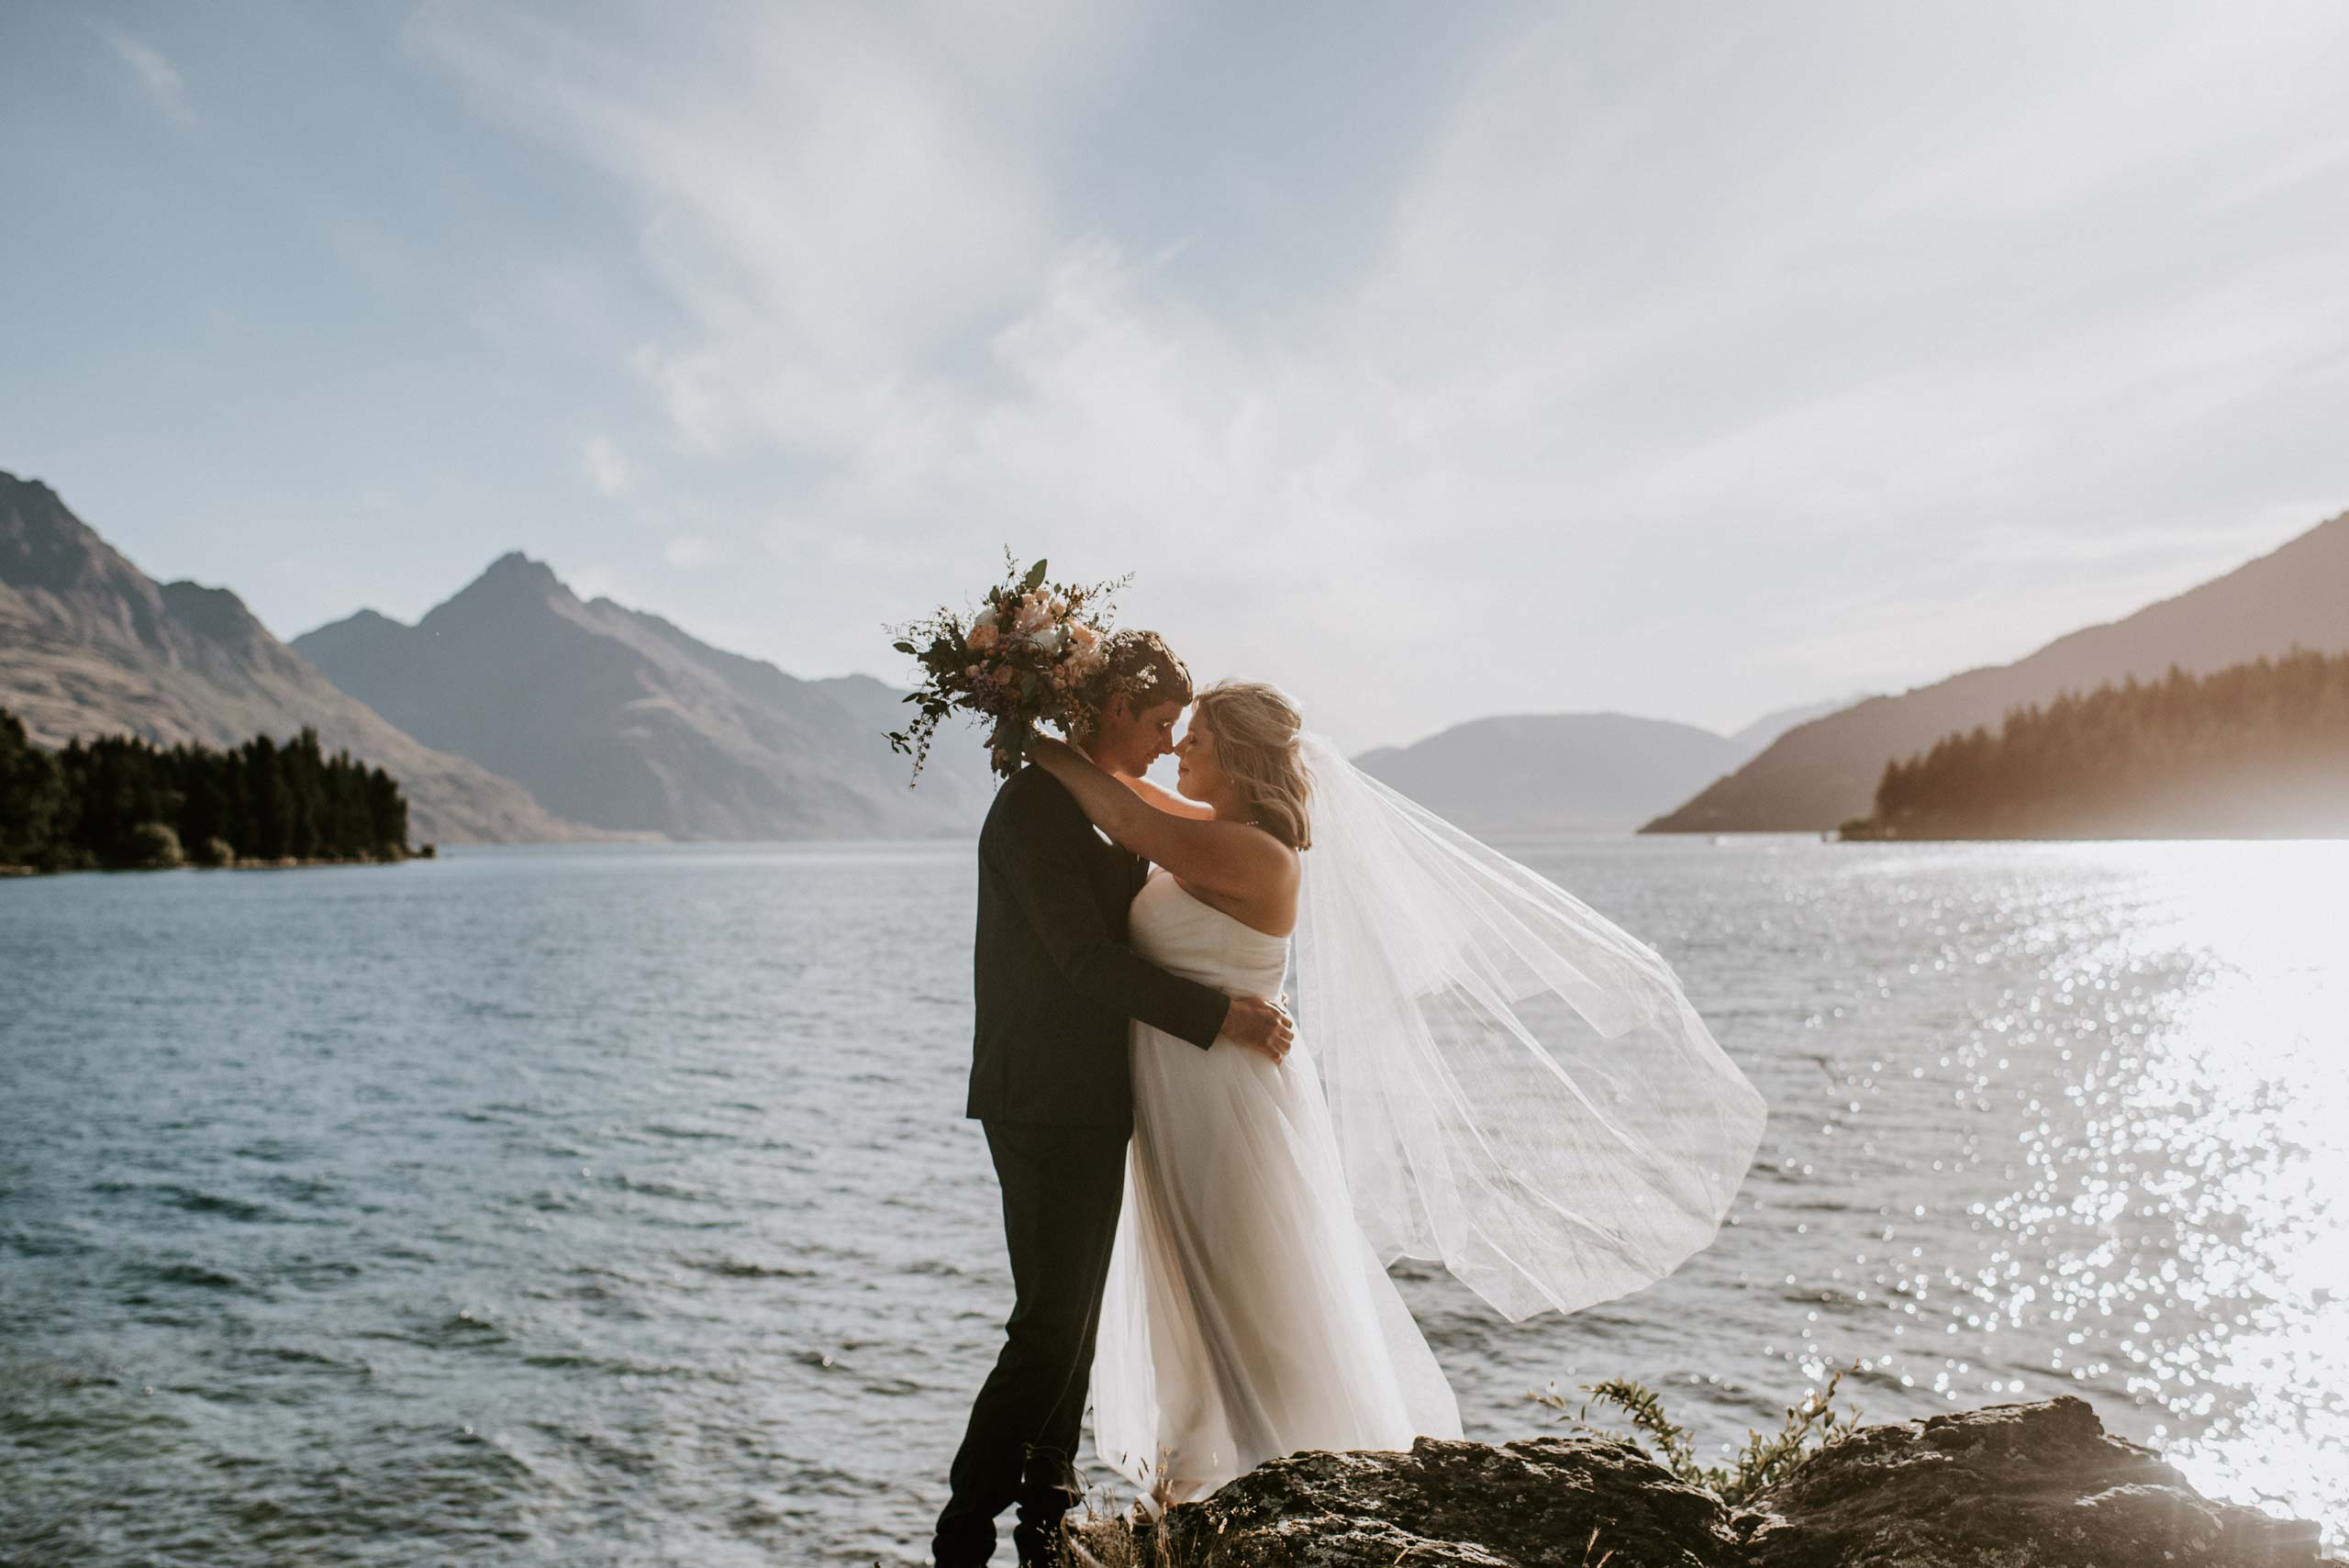 Wedding couple embracing by the lake - Queenstown Wedding Packages